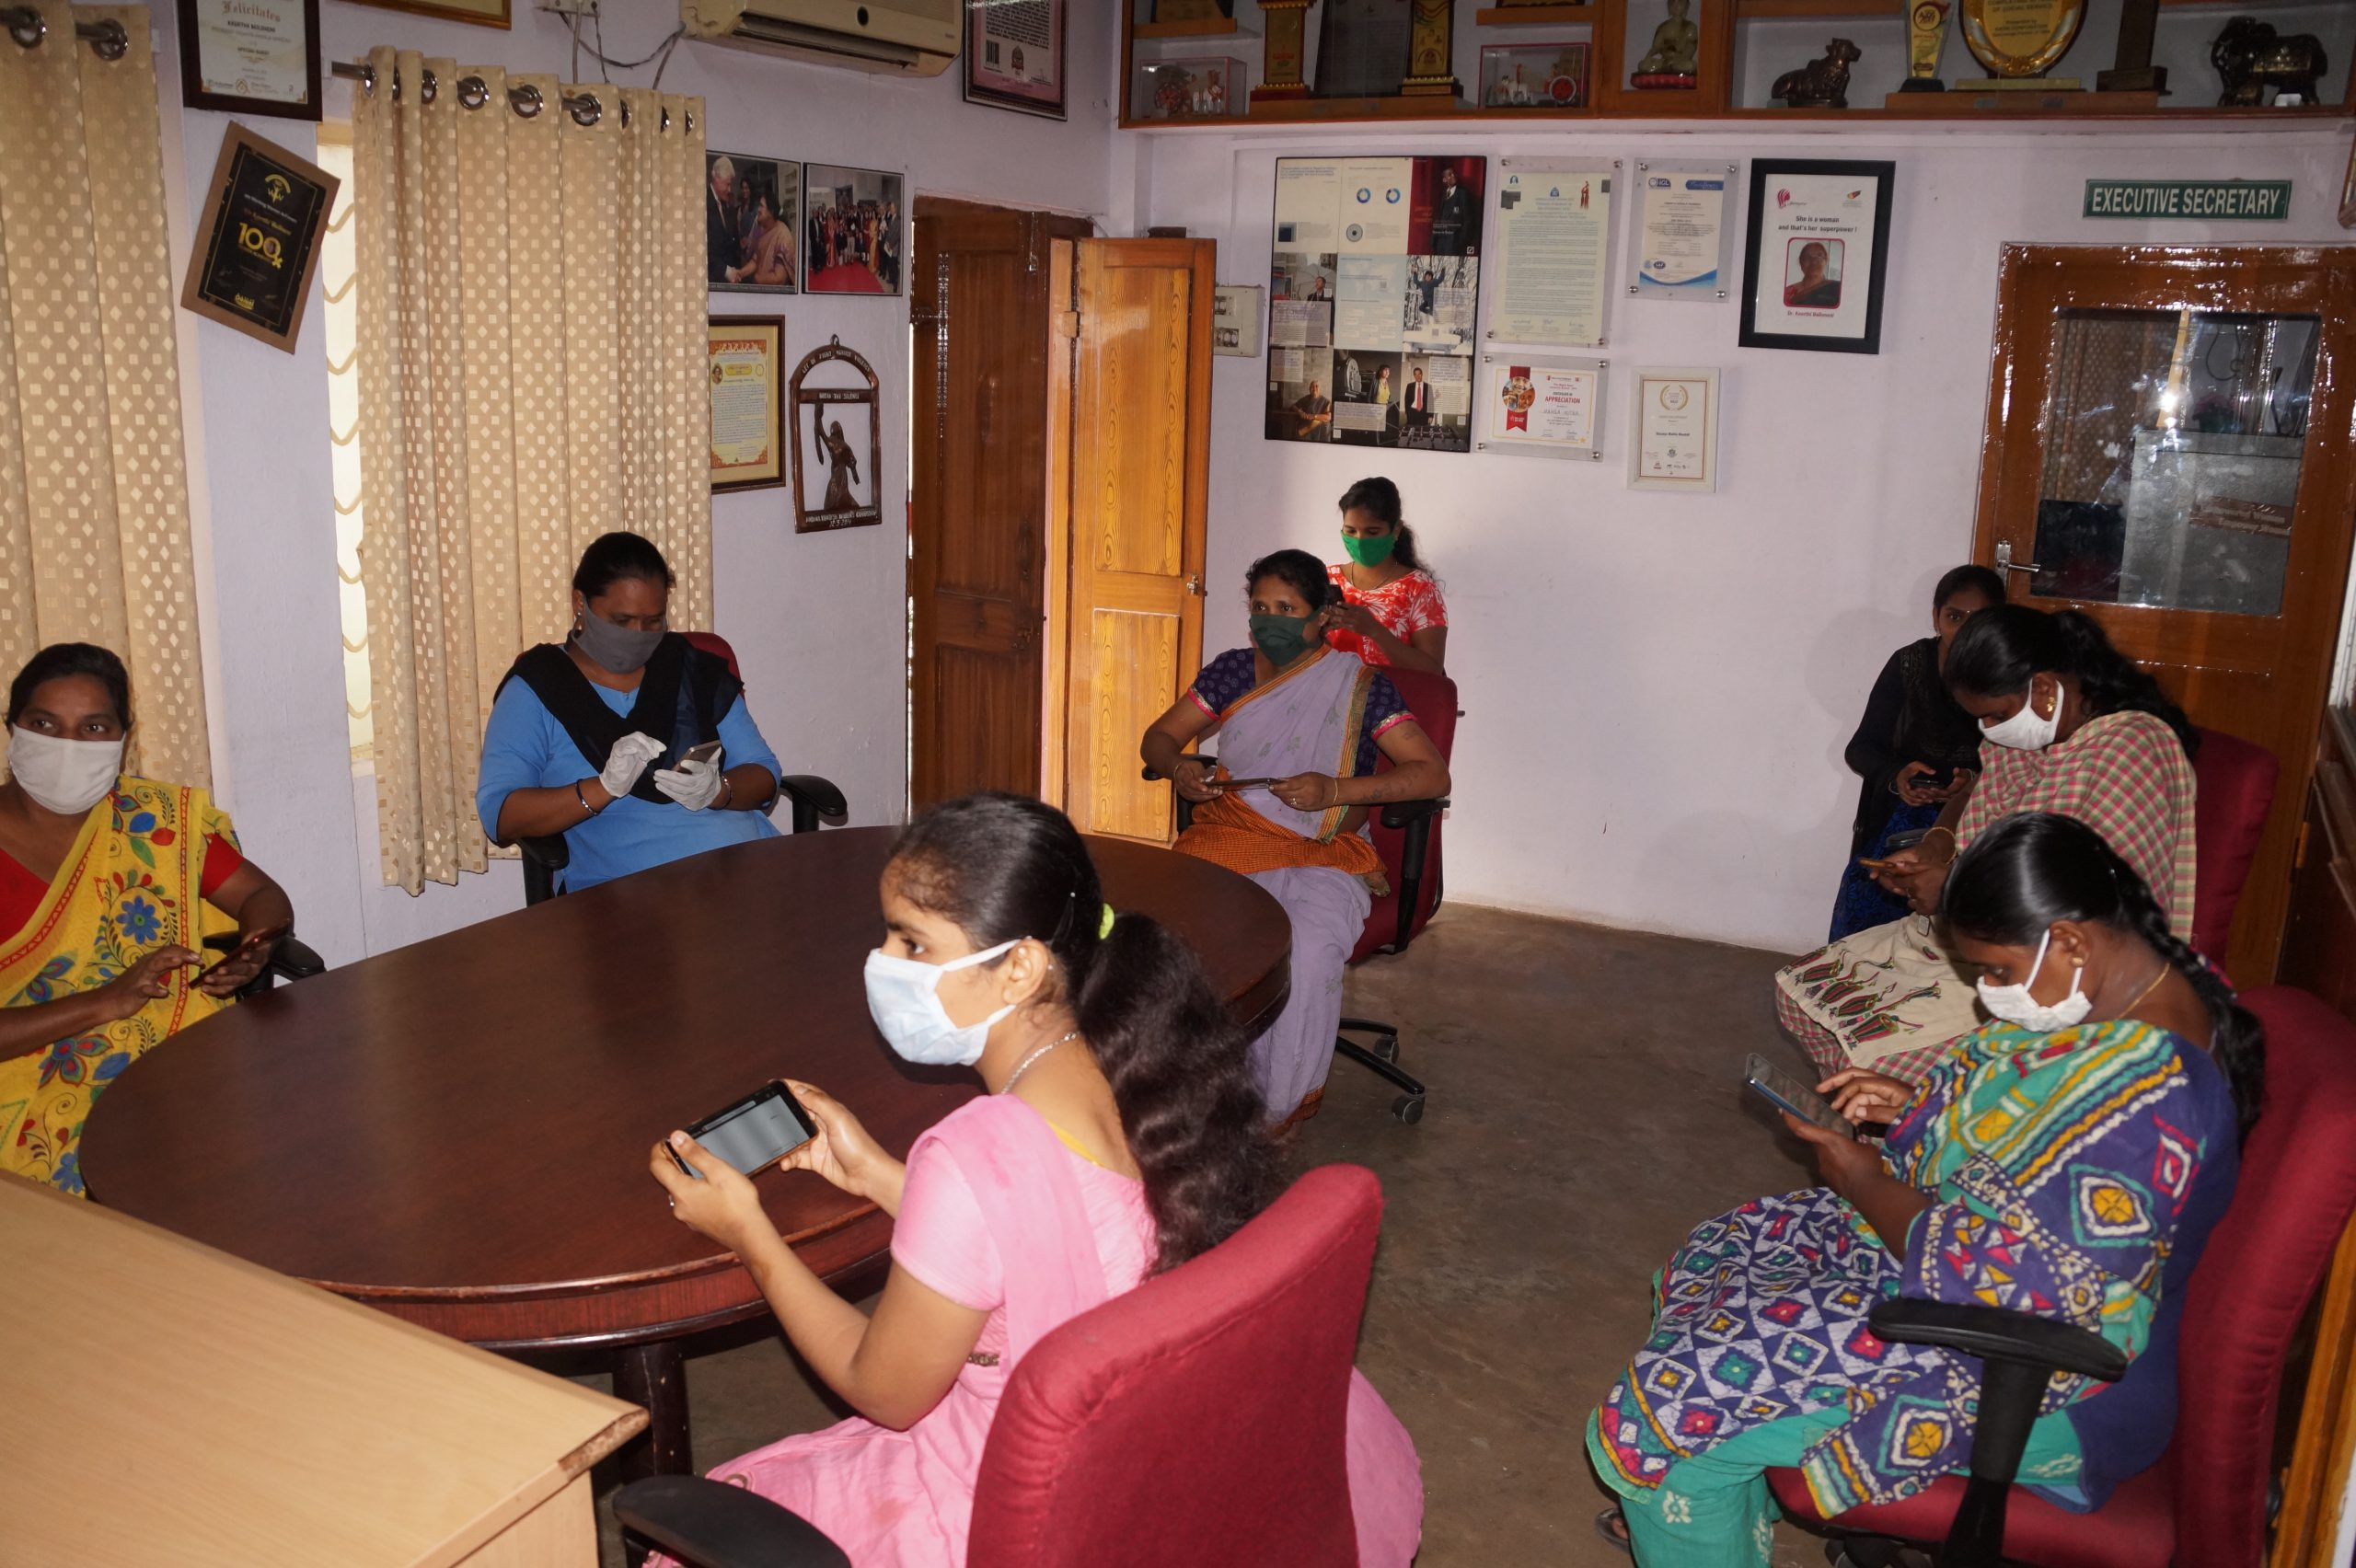 Pregnancy and COVID-19 training. Training of ASHA and Anganwadi frontline workers.